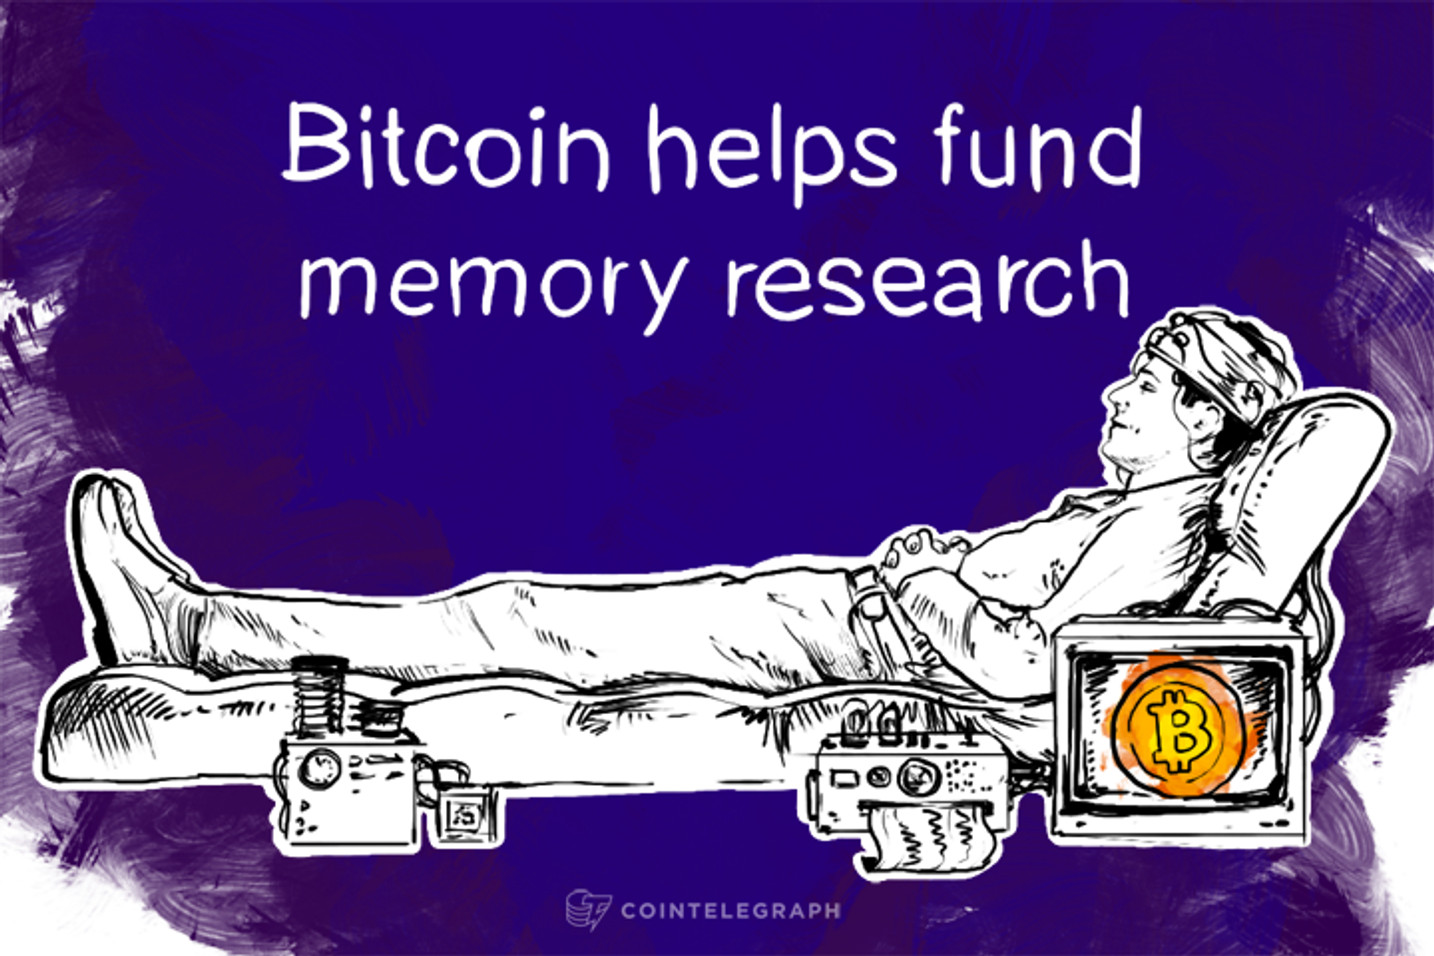 Bitcoin helps fund memory research